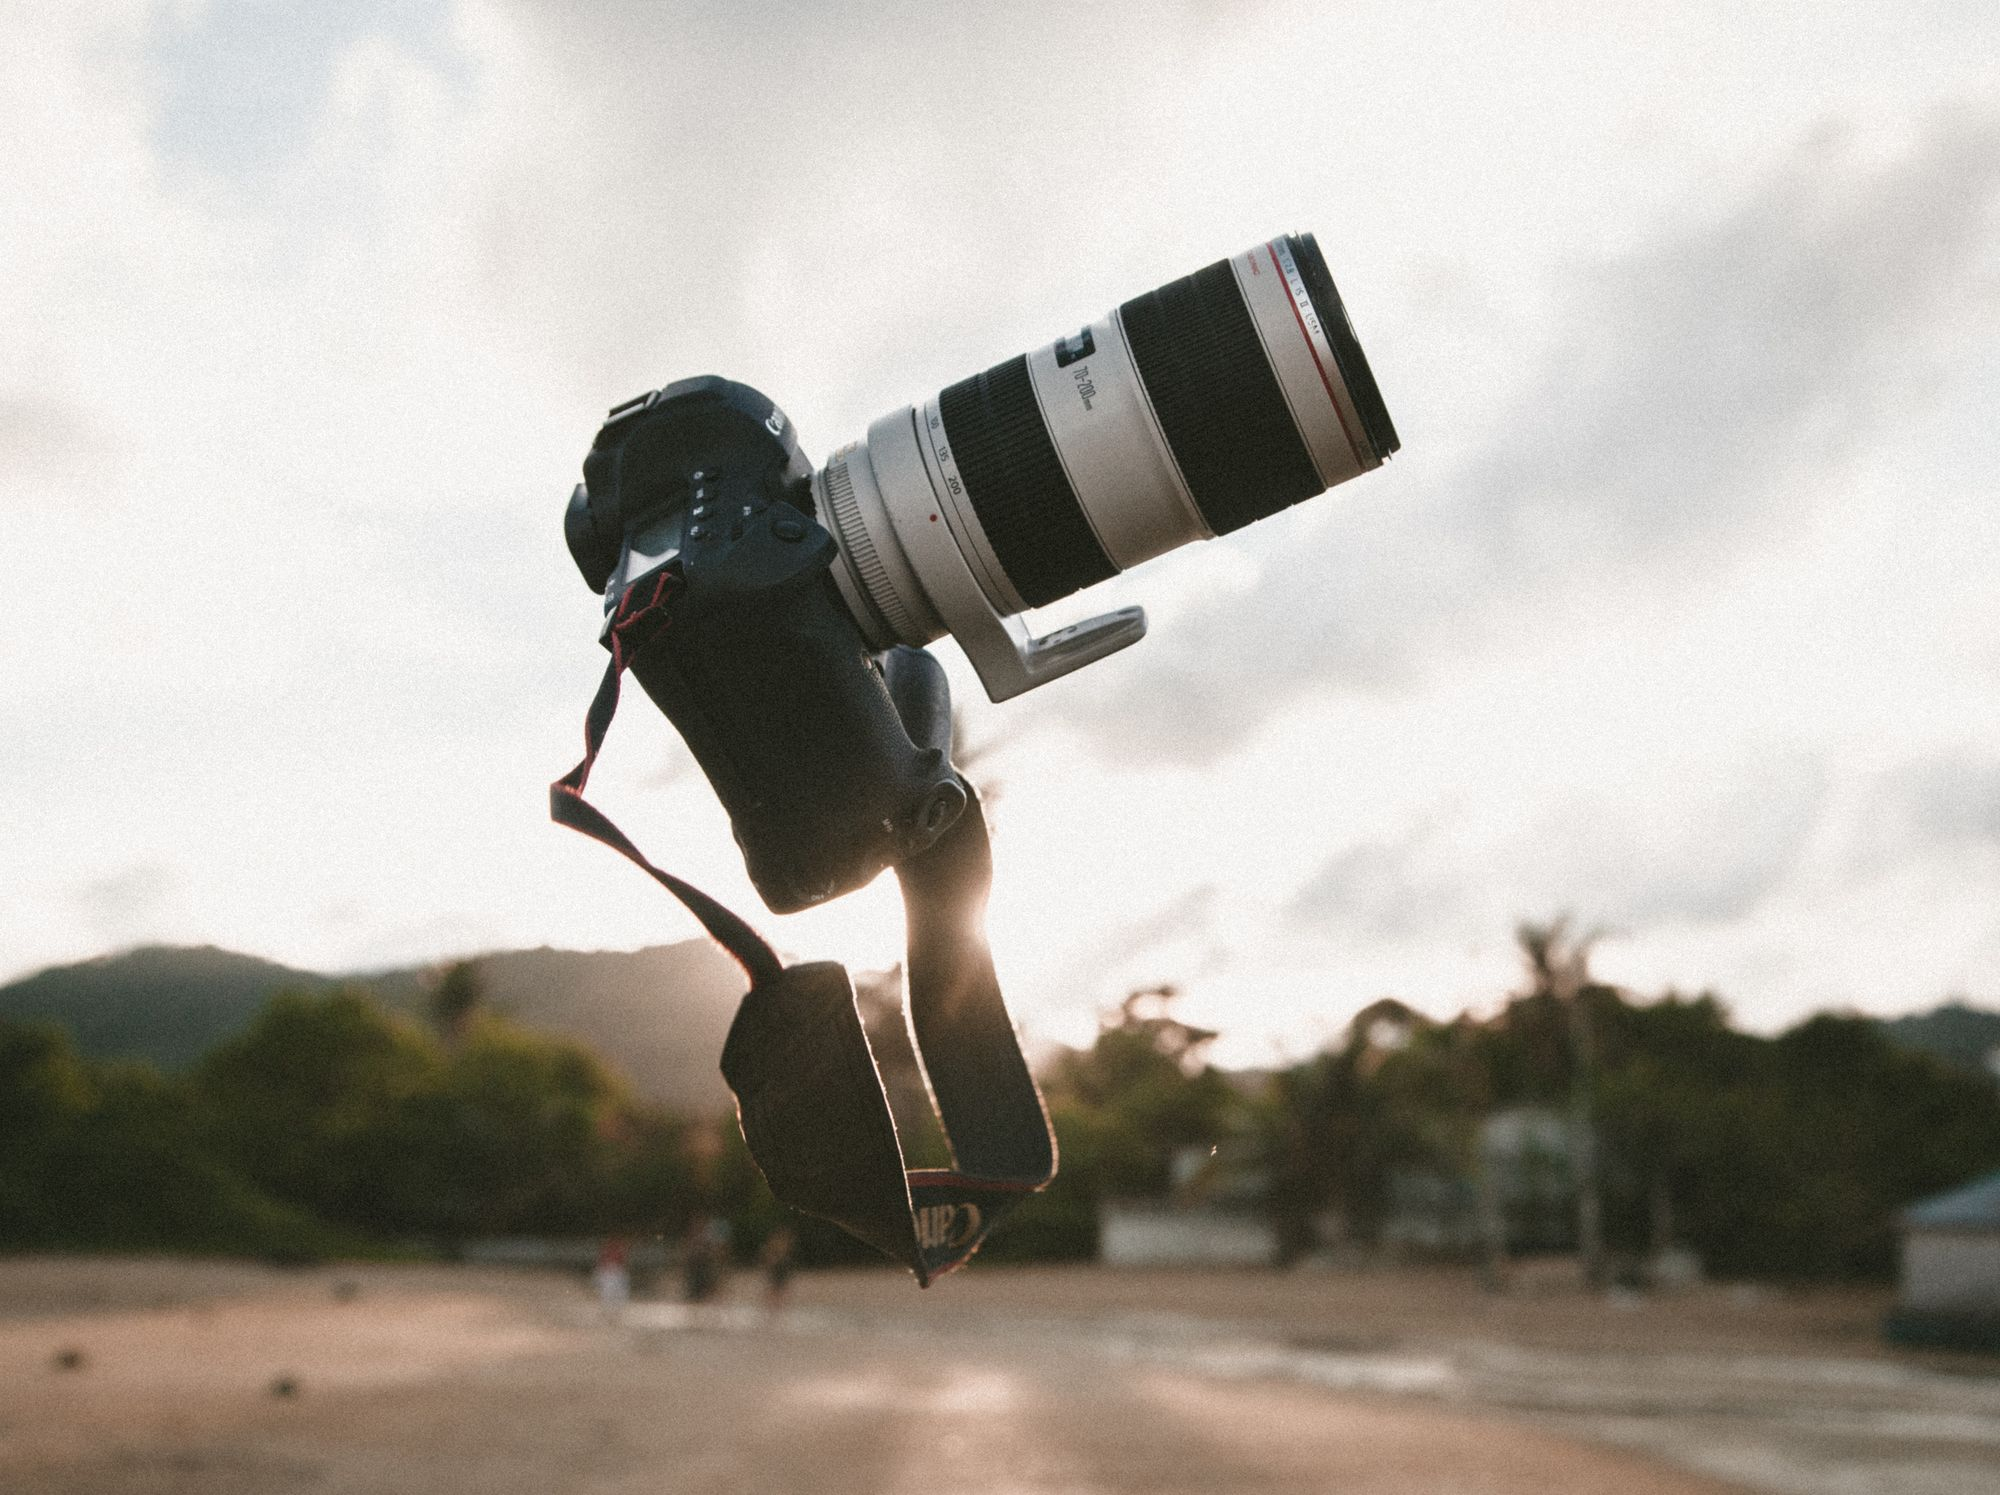 Best camera to use for taking photographs